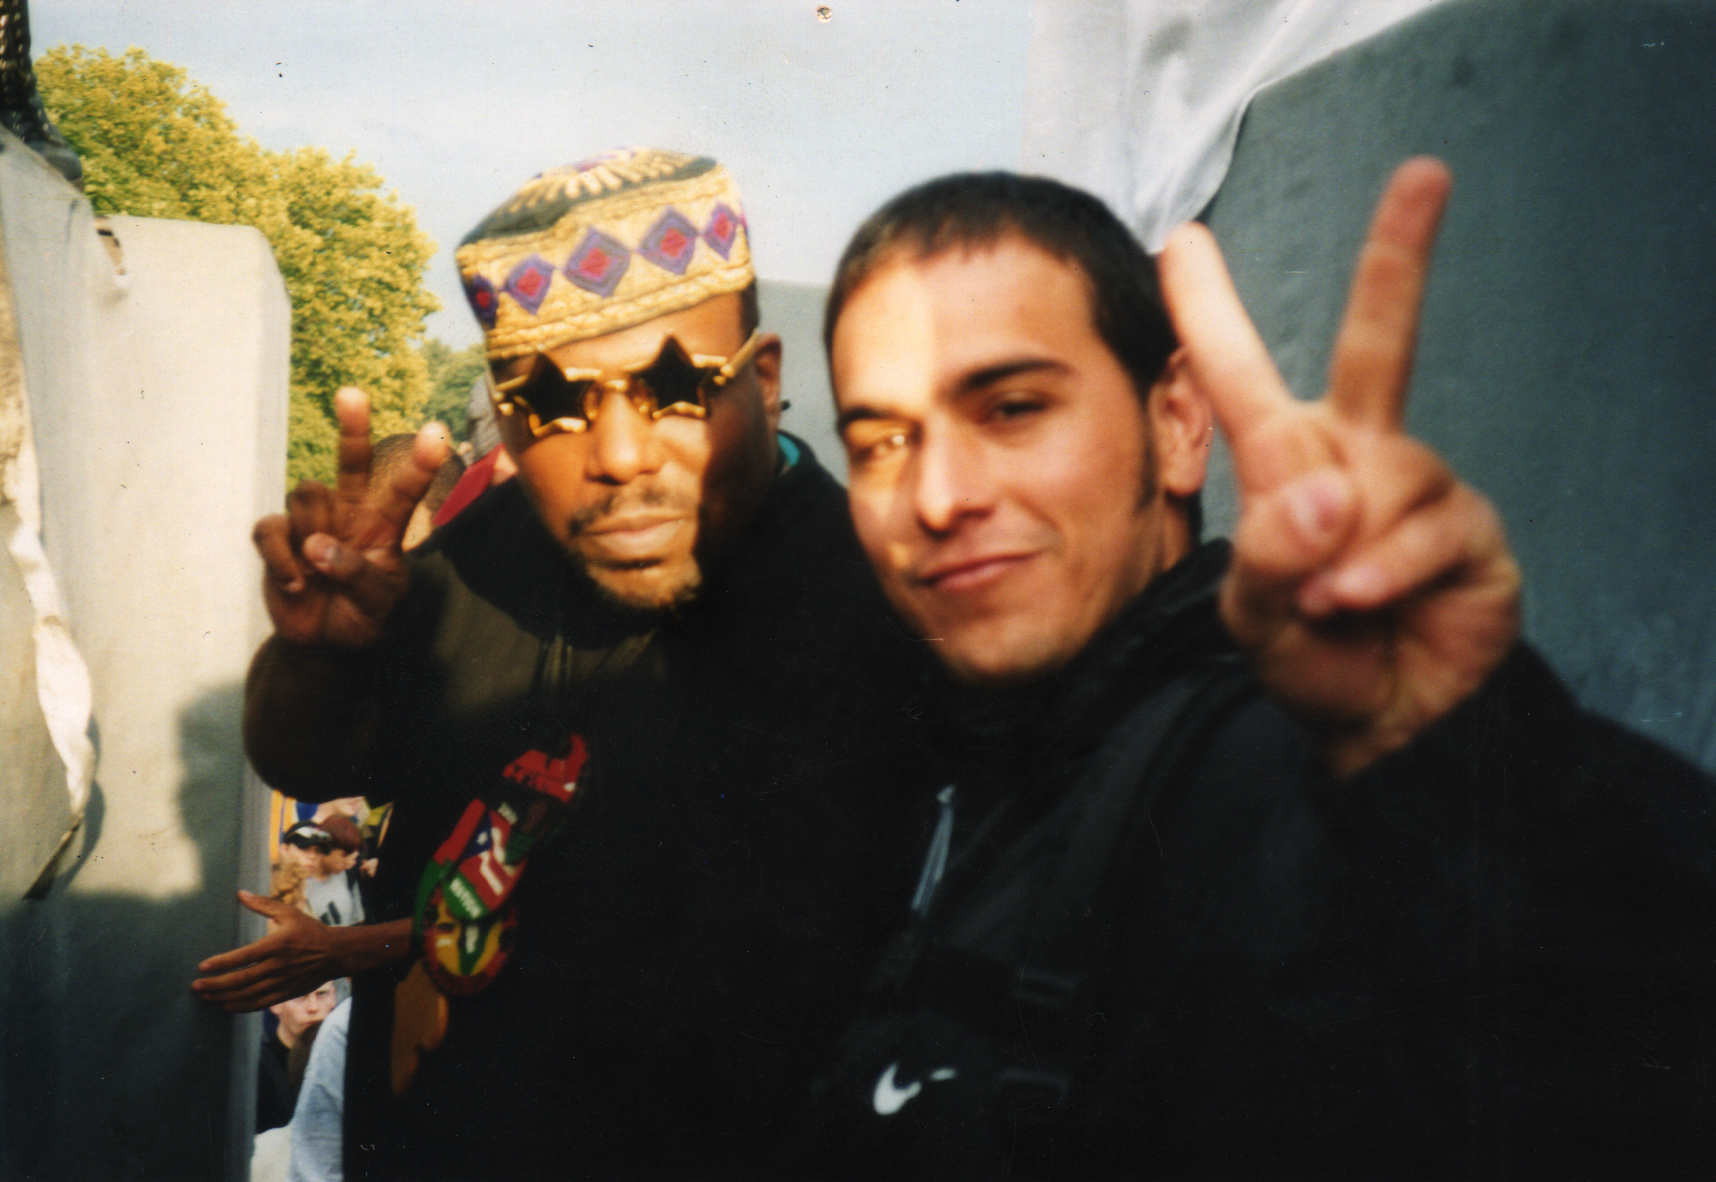 Love Parade - Berlin, 1998 with Afrika Bambaataa